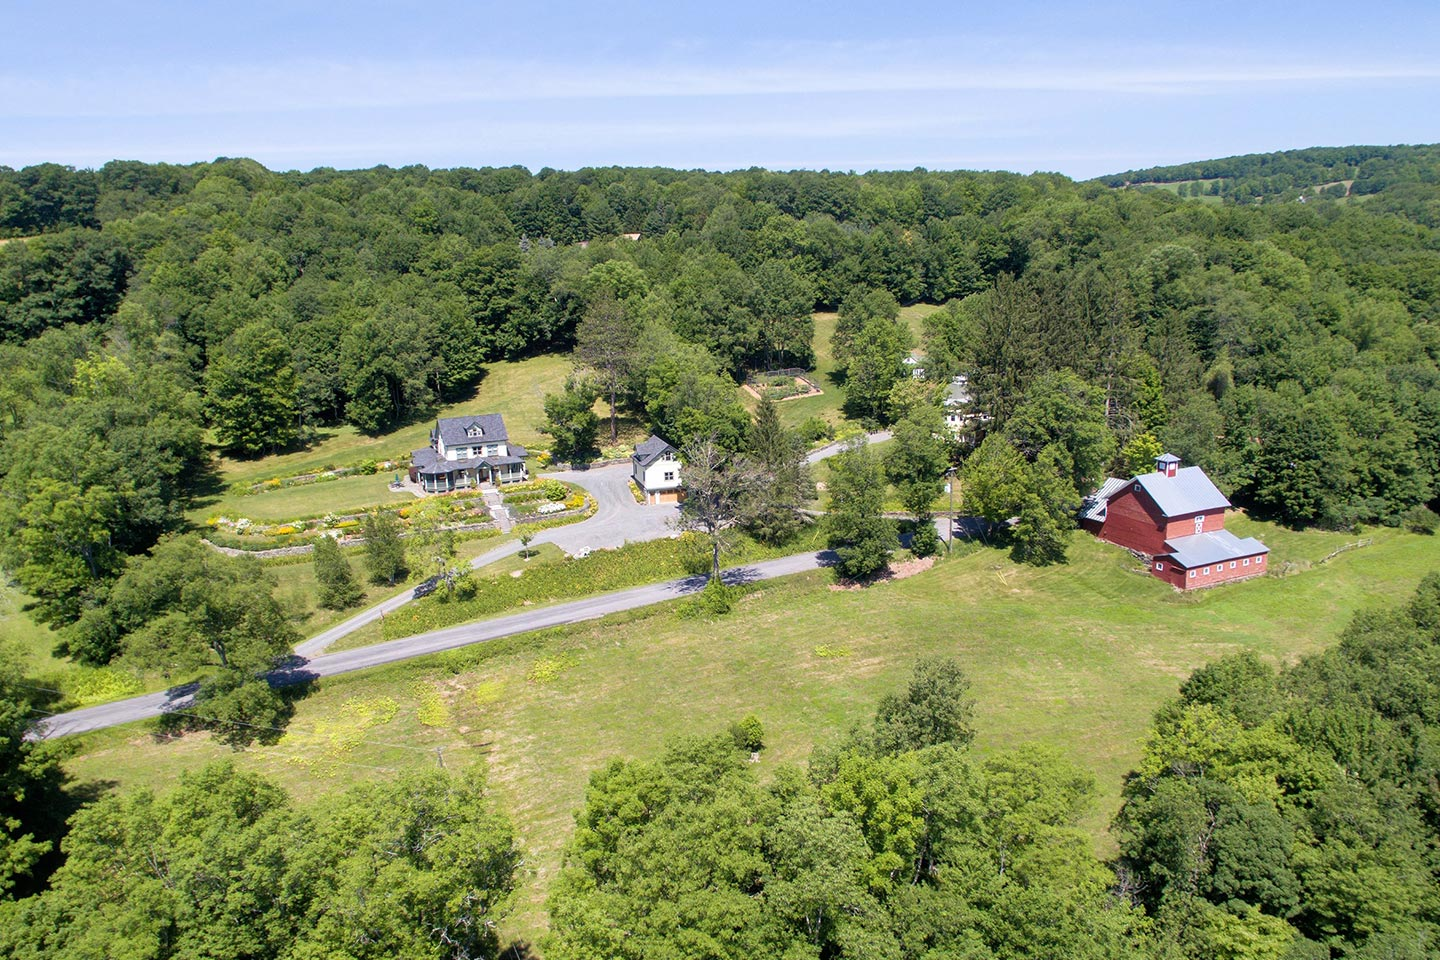 Breezy Hill Aerial View with Barn